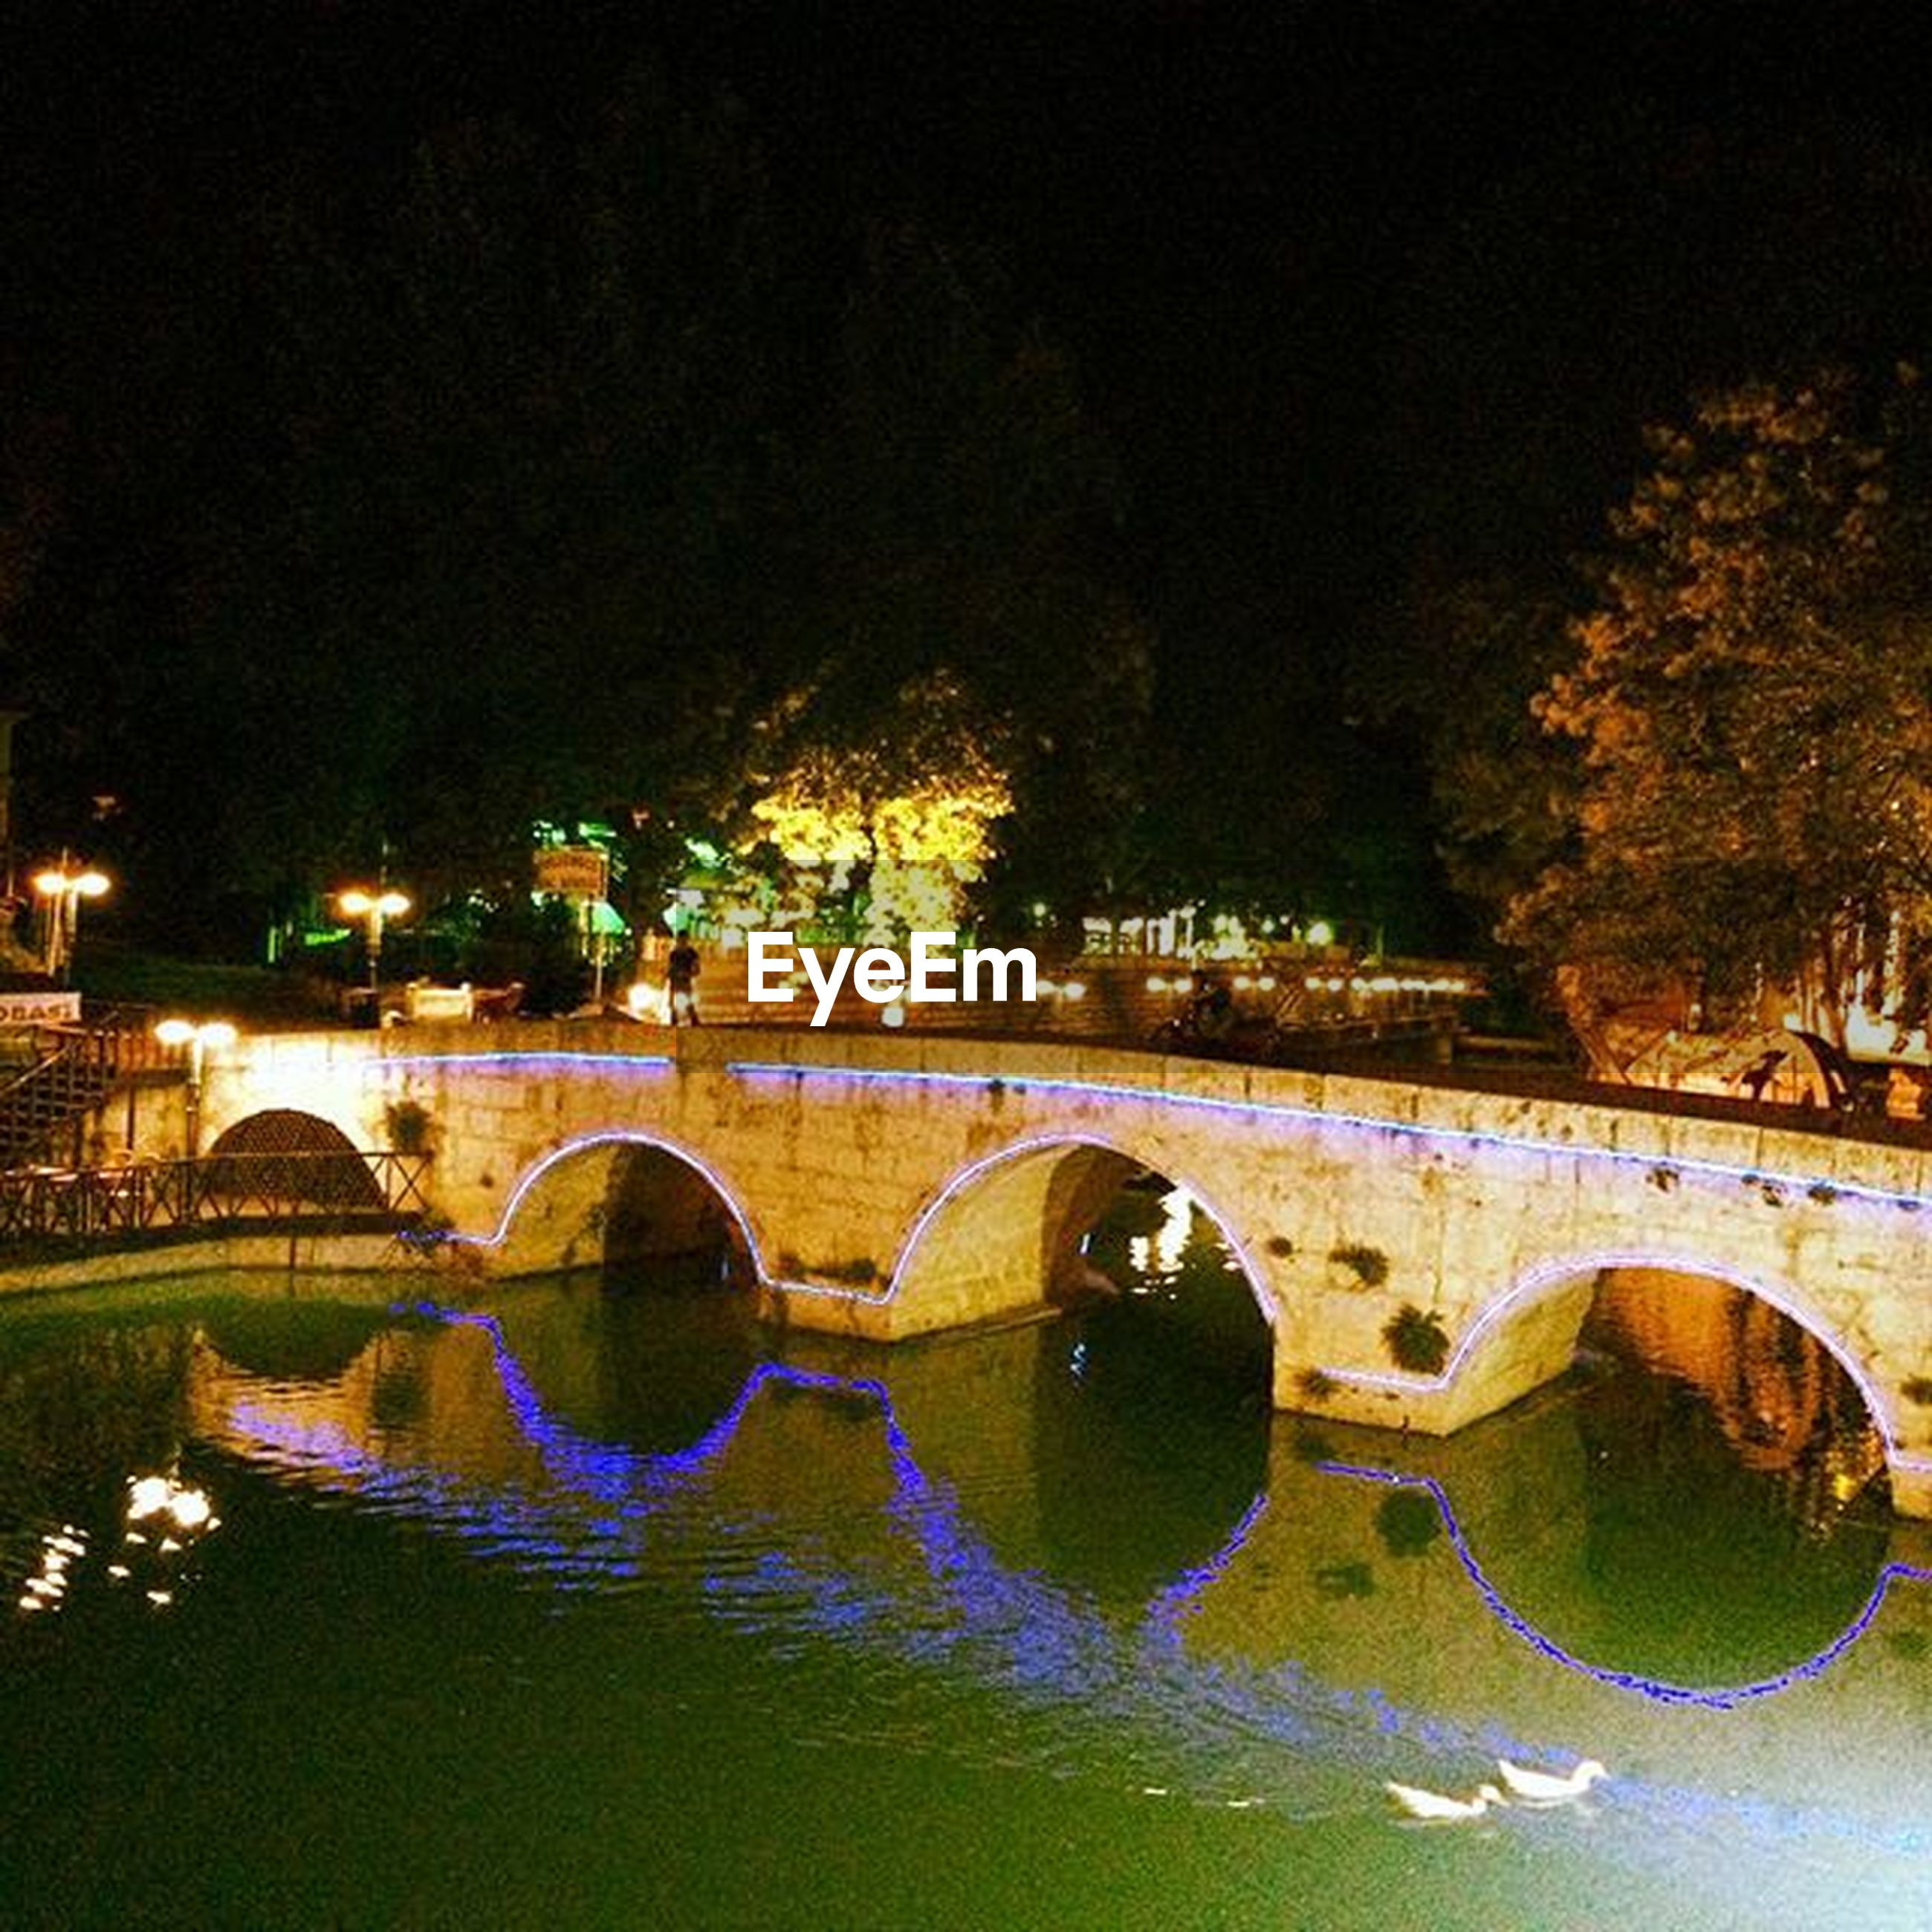 water, bridge - man made structure, river, night, architecture, tree, arch, connection, built structure, reflection, illuminated, outdoors, waterfront, growth, no people, nature, building exterior, city, sky